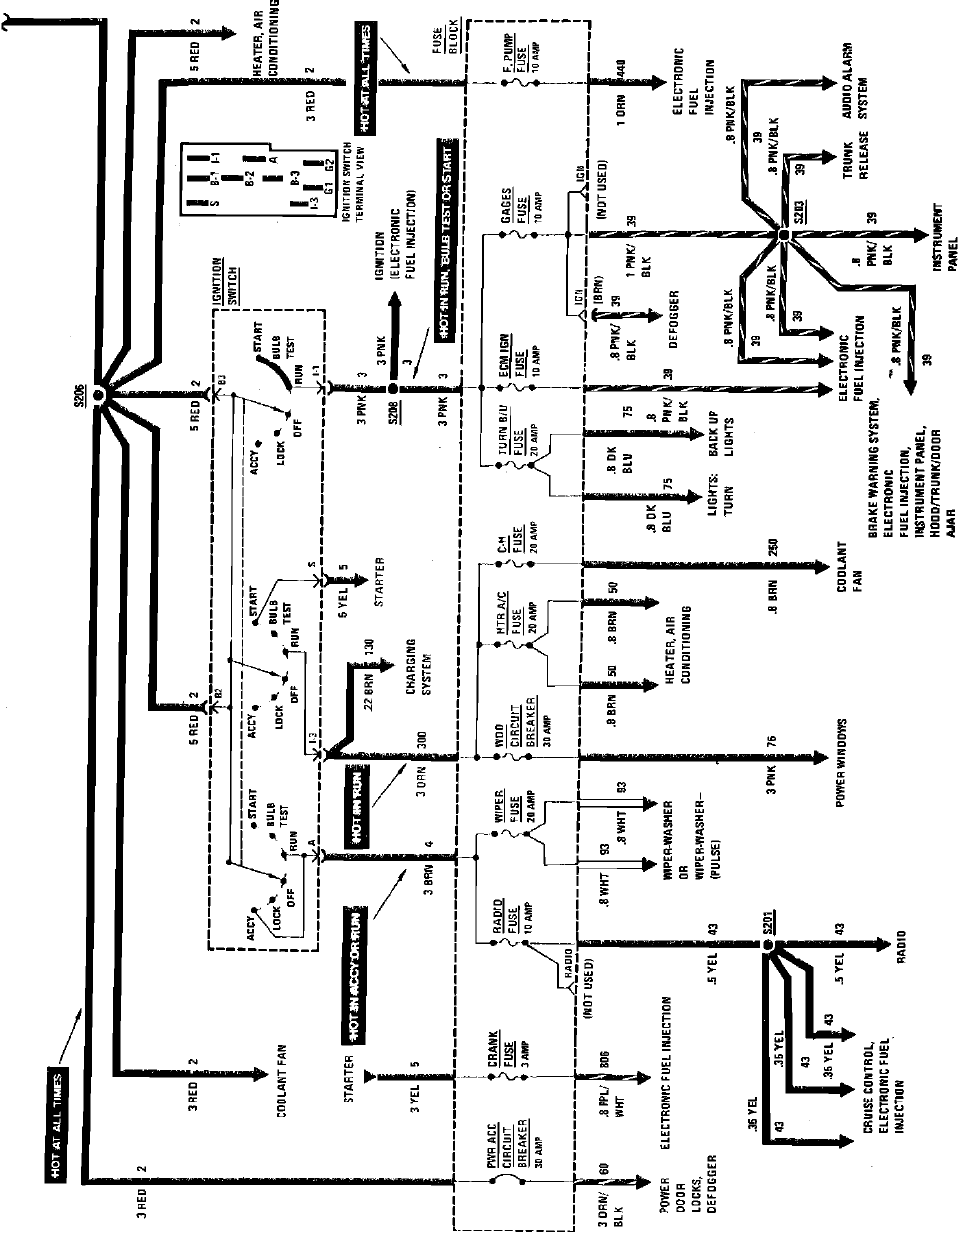 1984 Fiero Electrical Diagrams - System Charging System Wiring ...  FDOCUMENTS